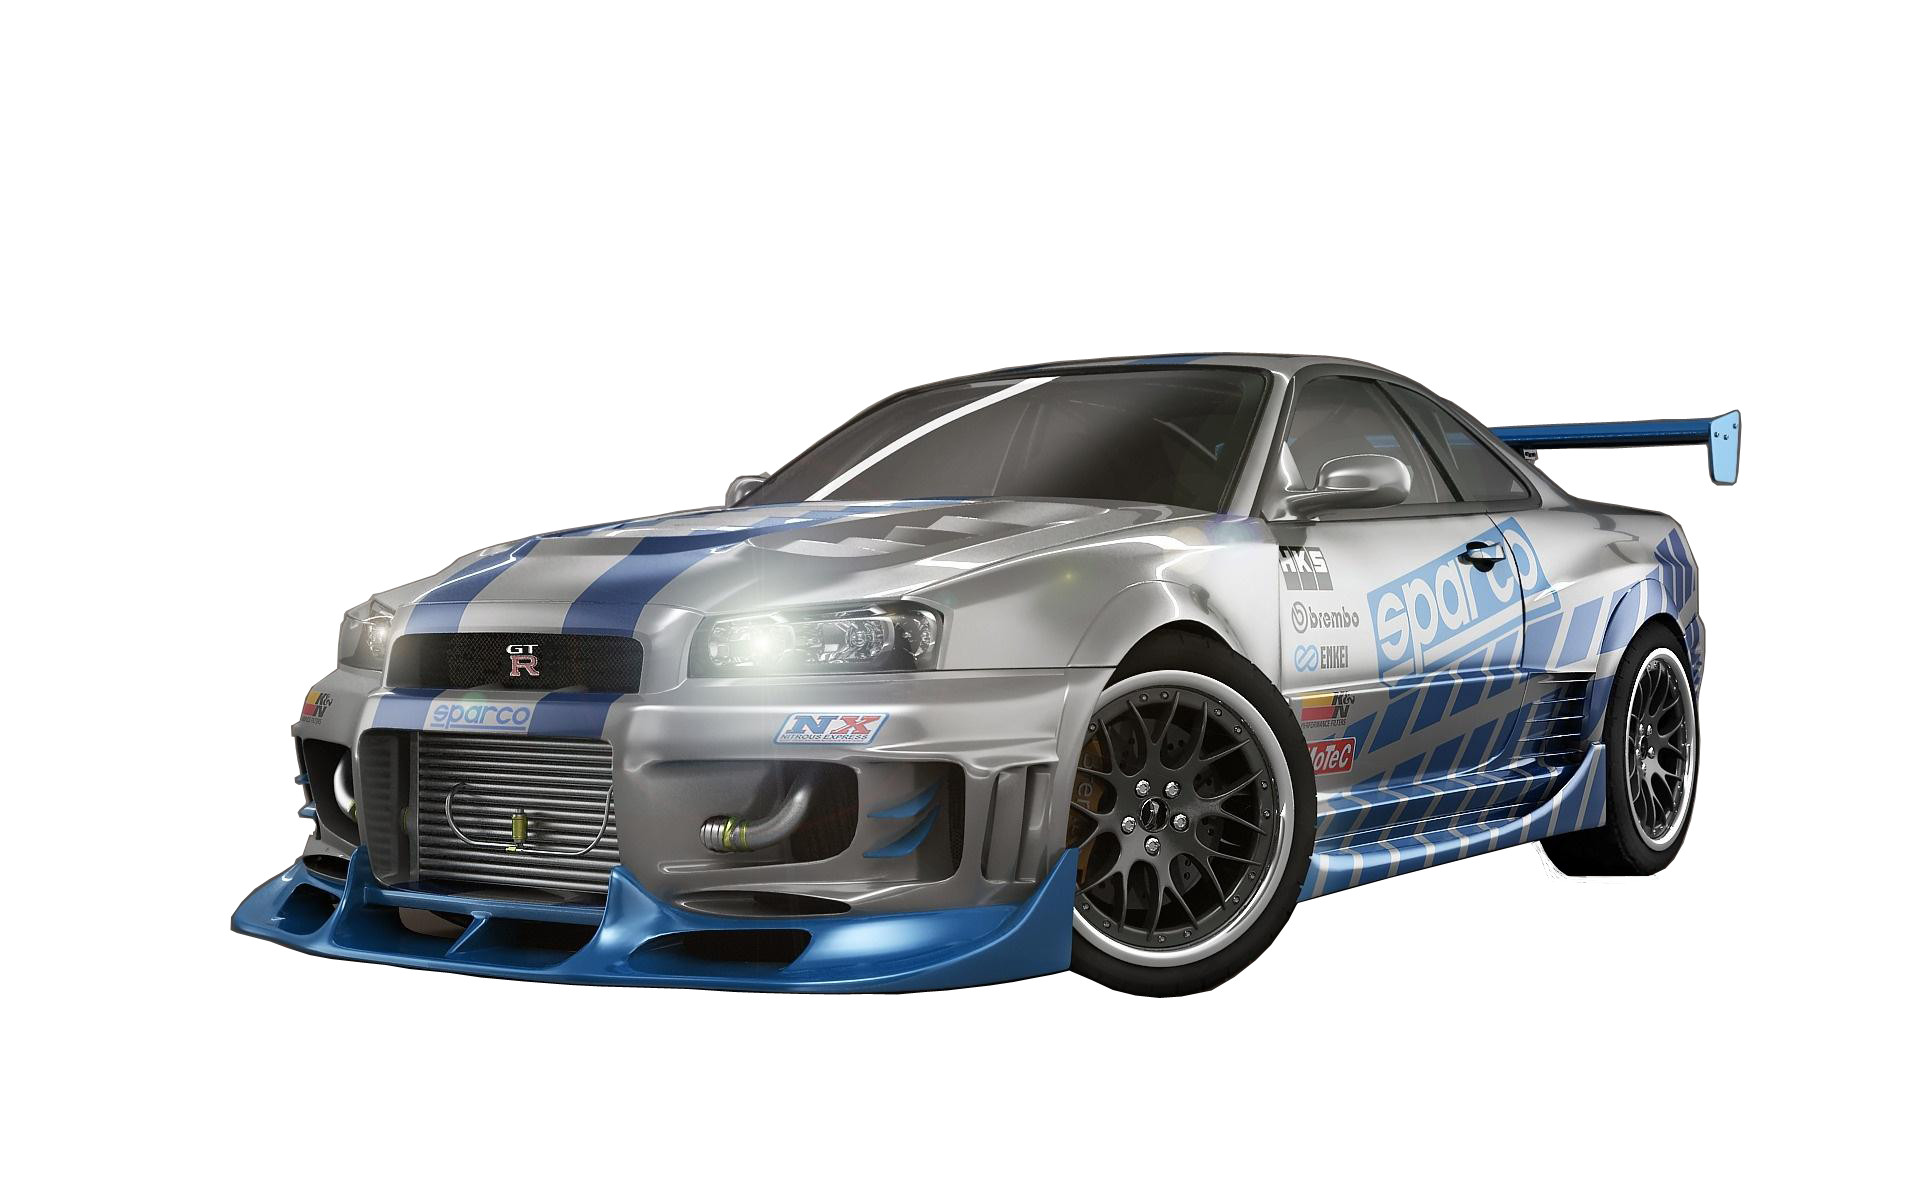 1920x1200 Nissan Skyline Fast and Furious 7 Sport Car Wallpaper